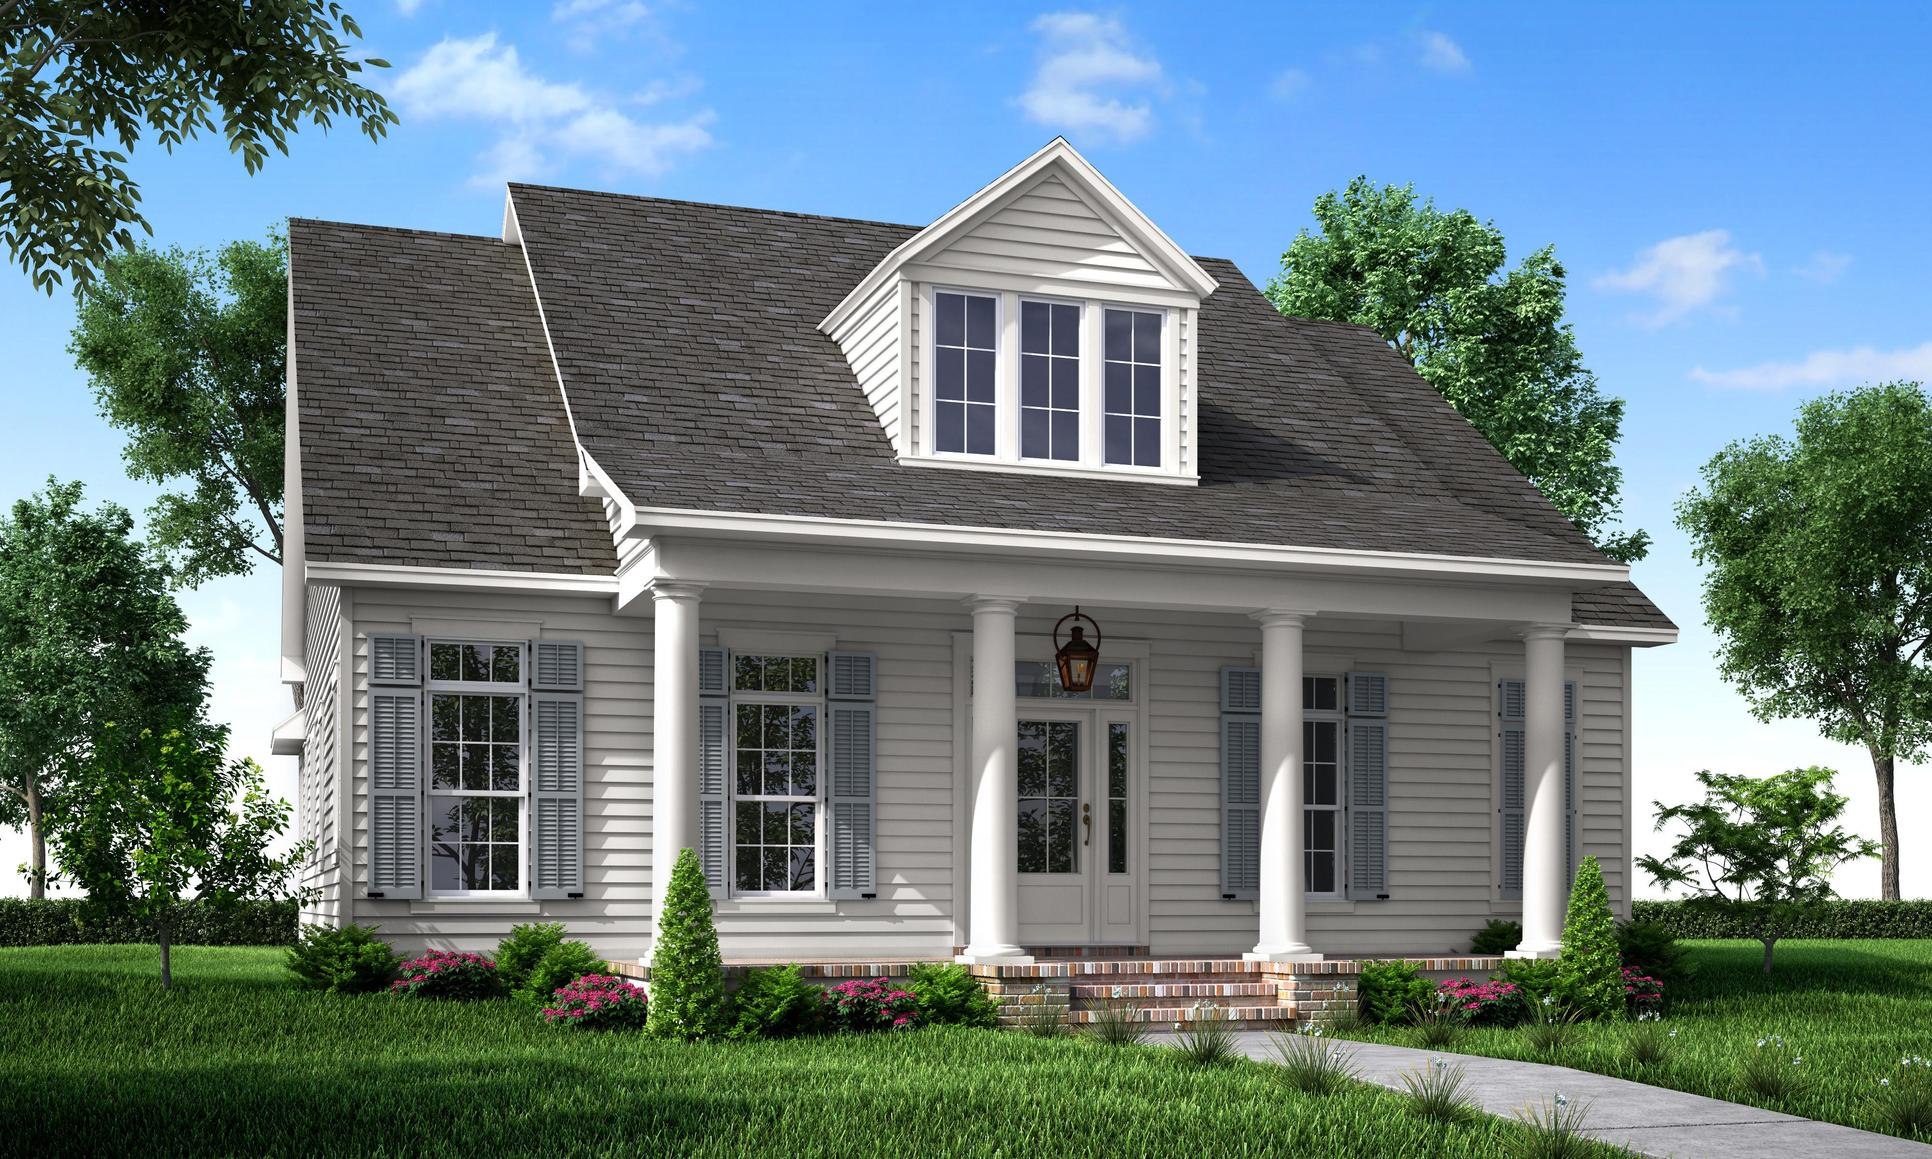 Front Elevation A:The Villa - Highland Homes